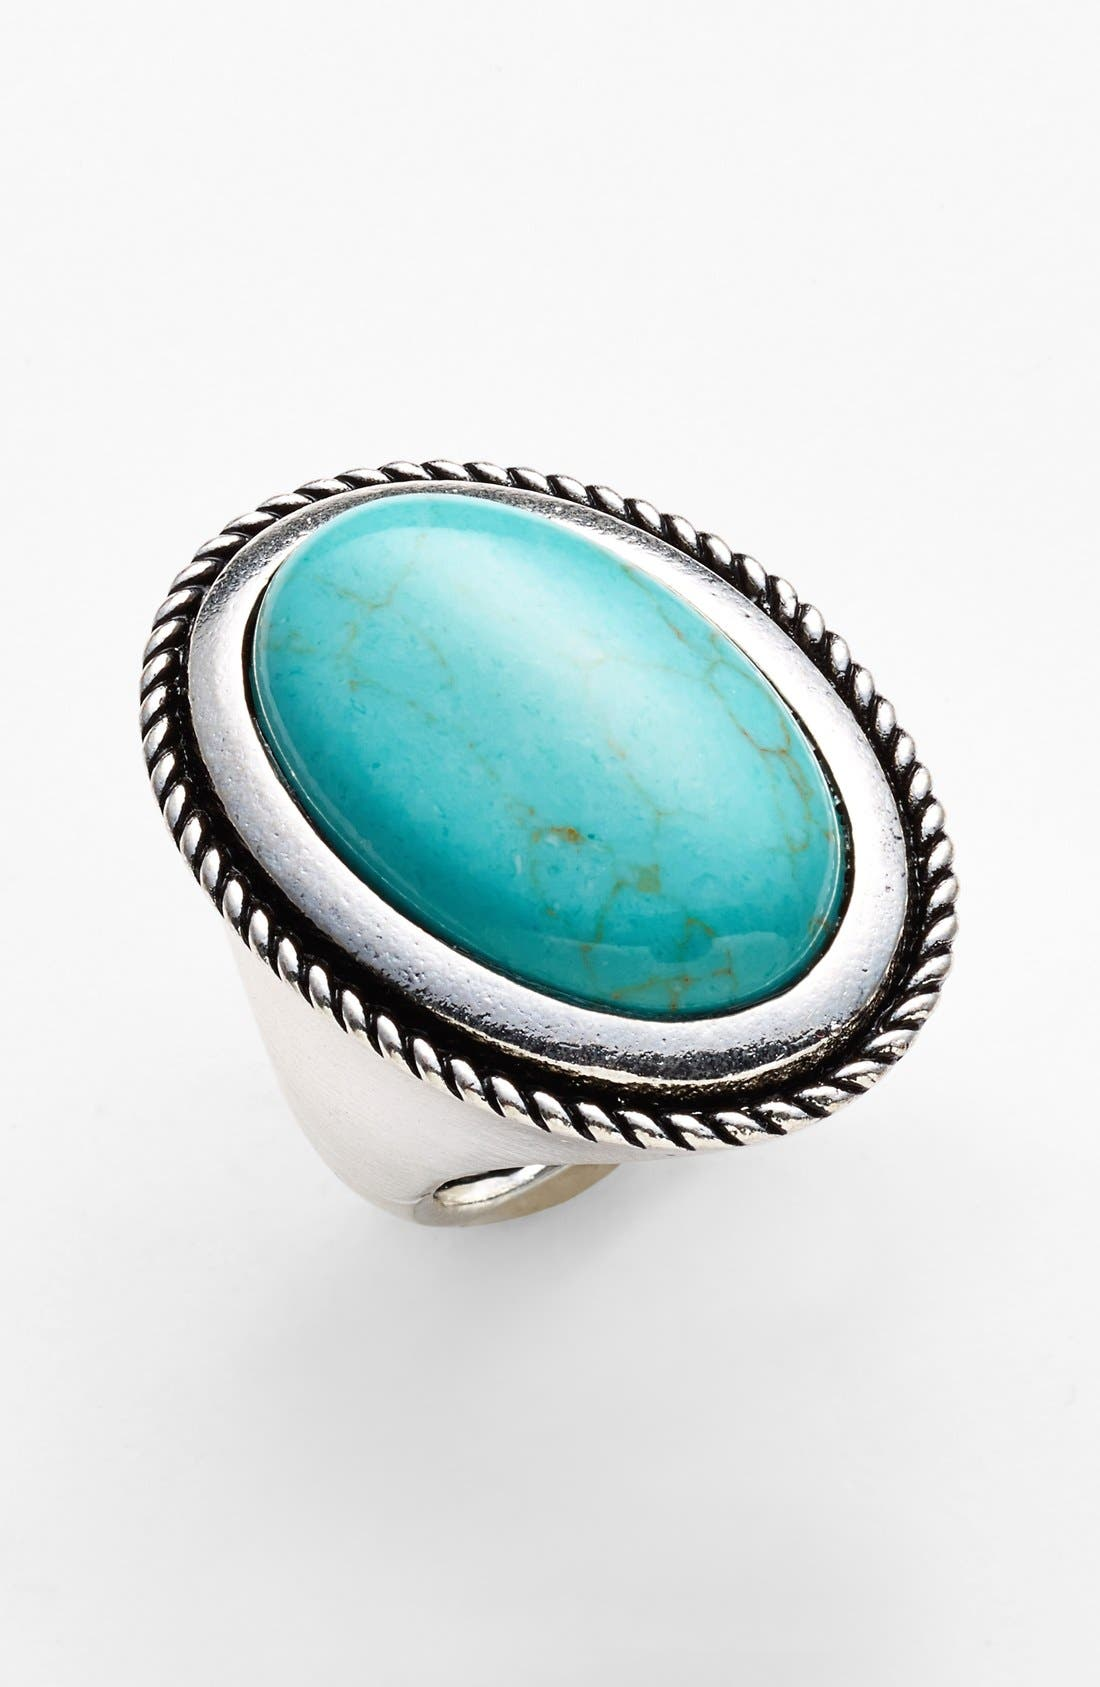 Main Image - Spring Street Oval Reconstituted Turquoise Ring